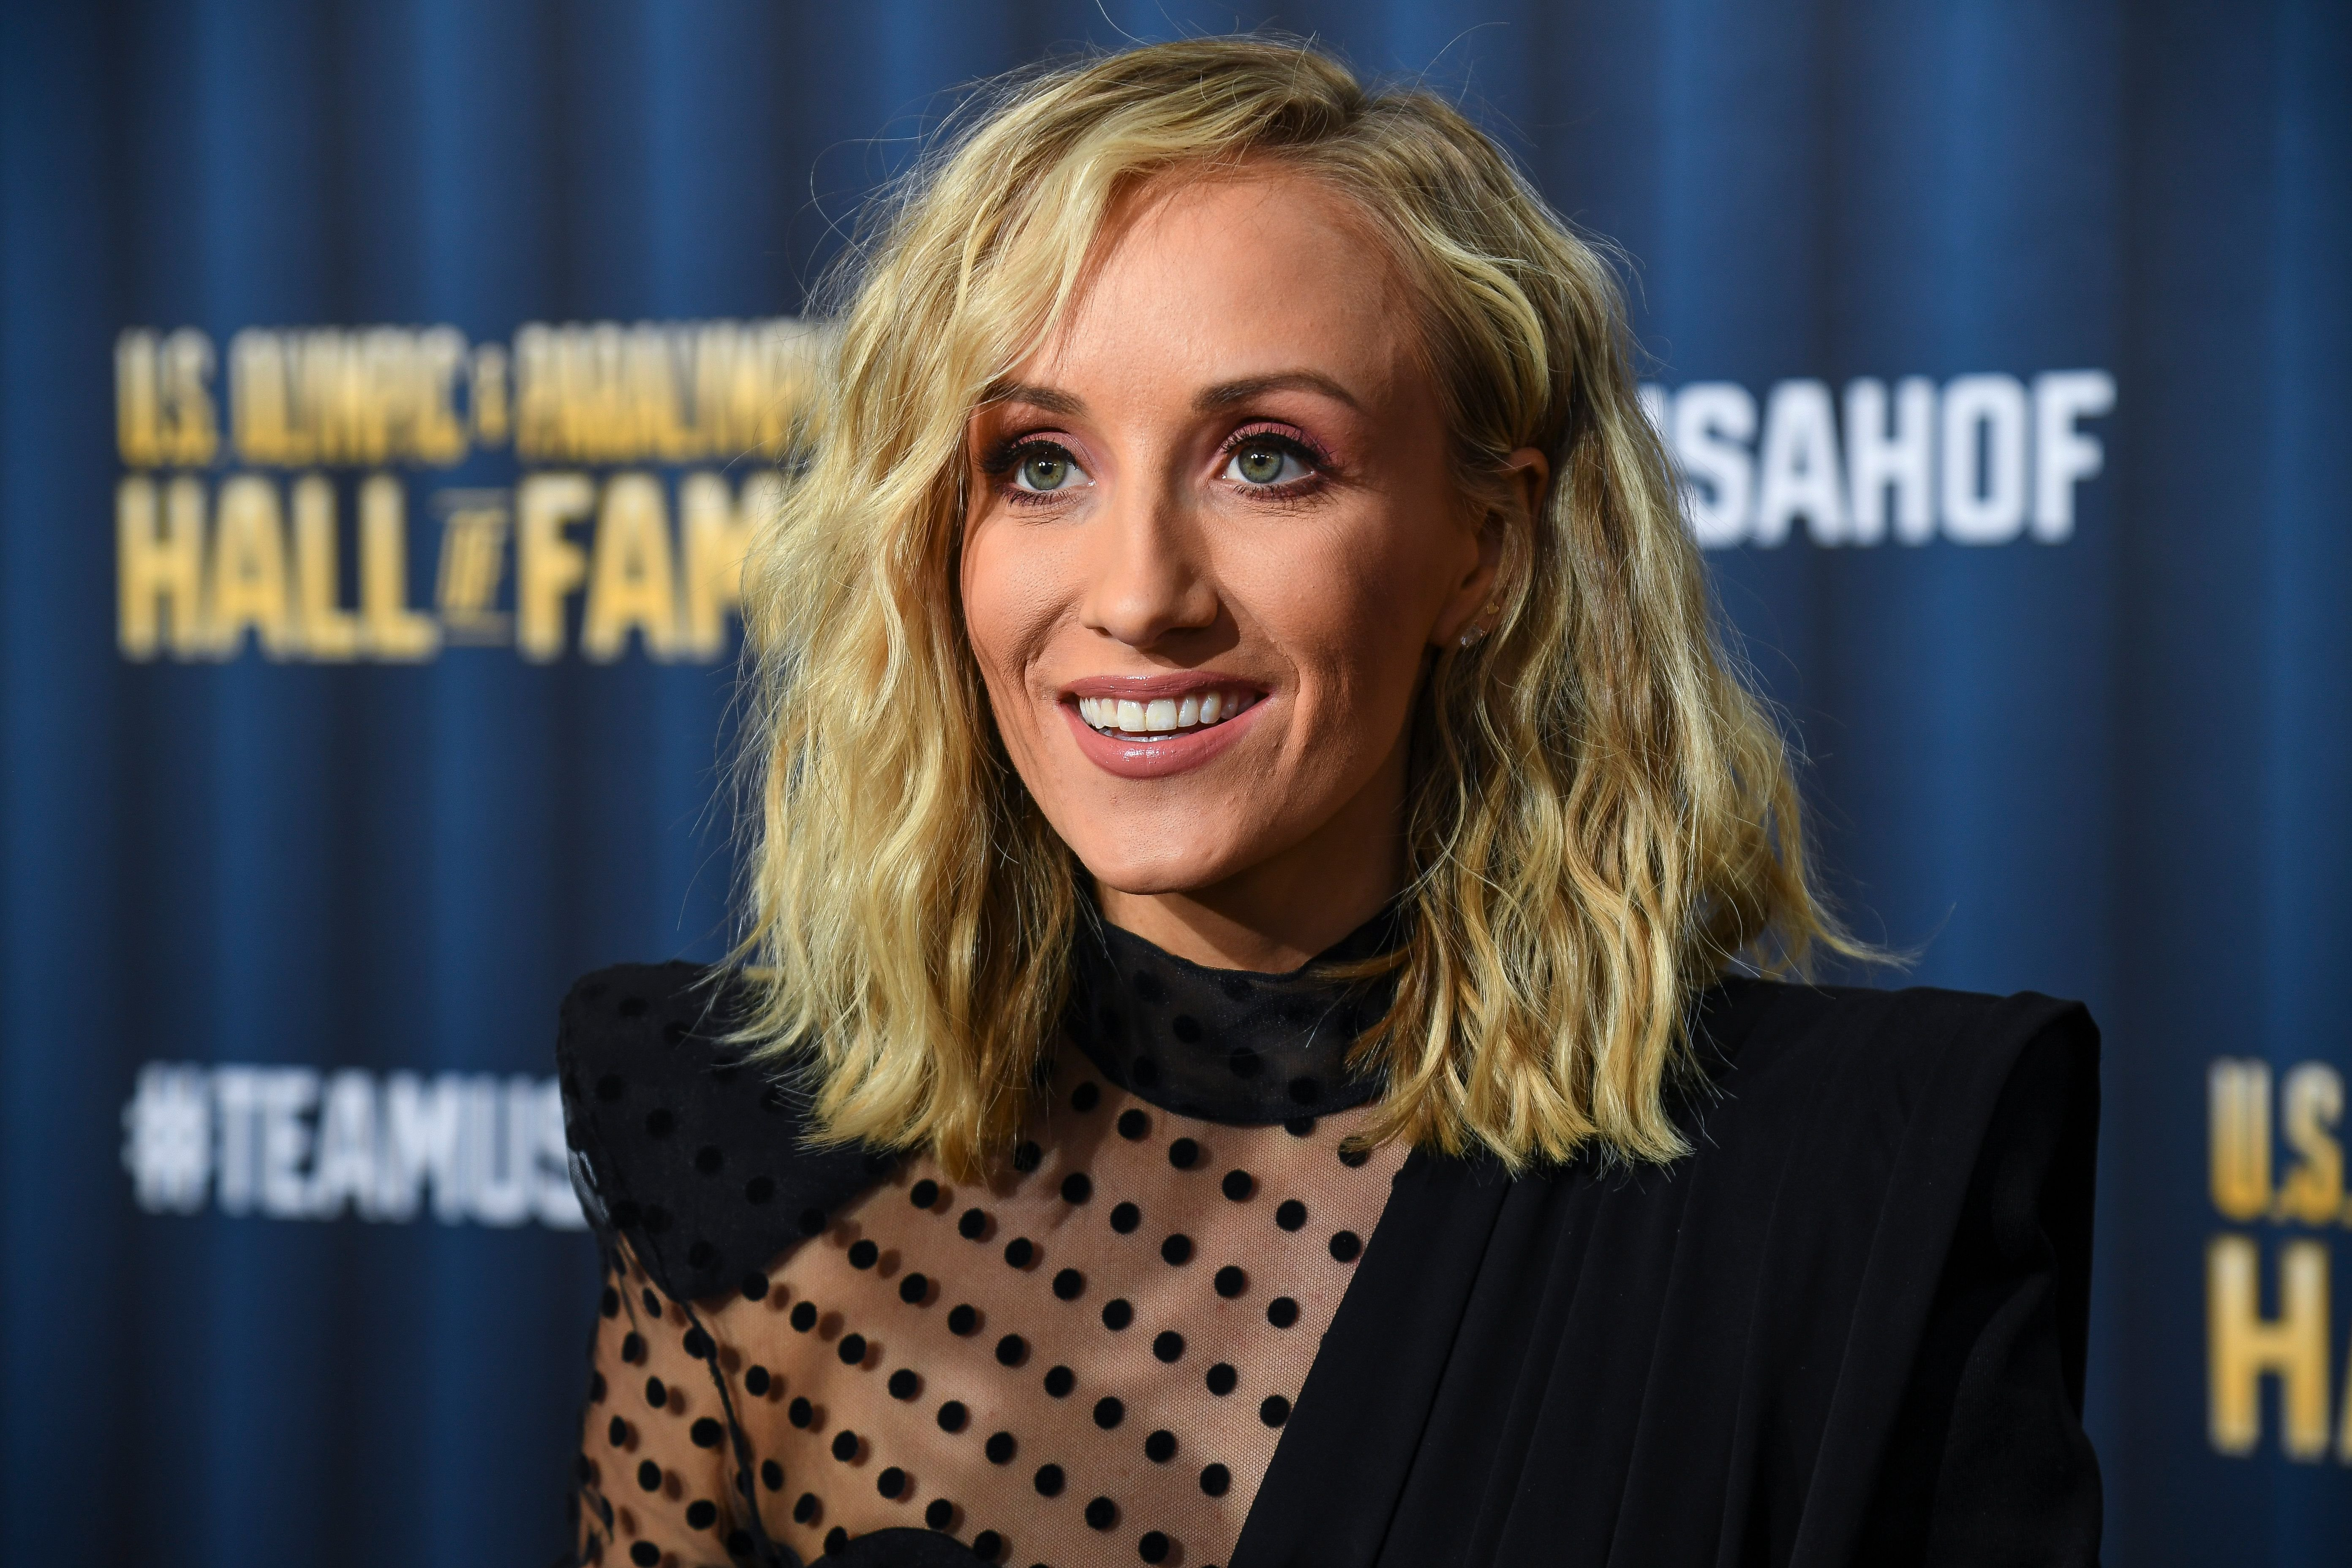 Nastia Liukin talked to the media on the red carpet before the U.S. Olympic Hall of Fame Class of 2019 Induction Ceremony on November 1, 2019 | Photo: Getty Images